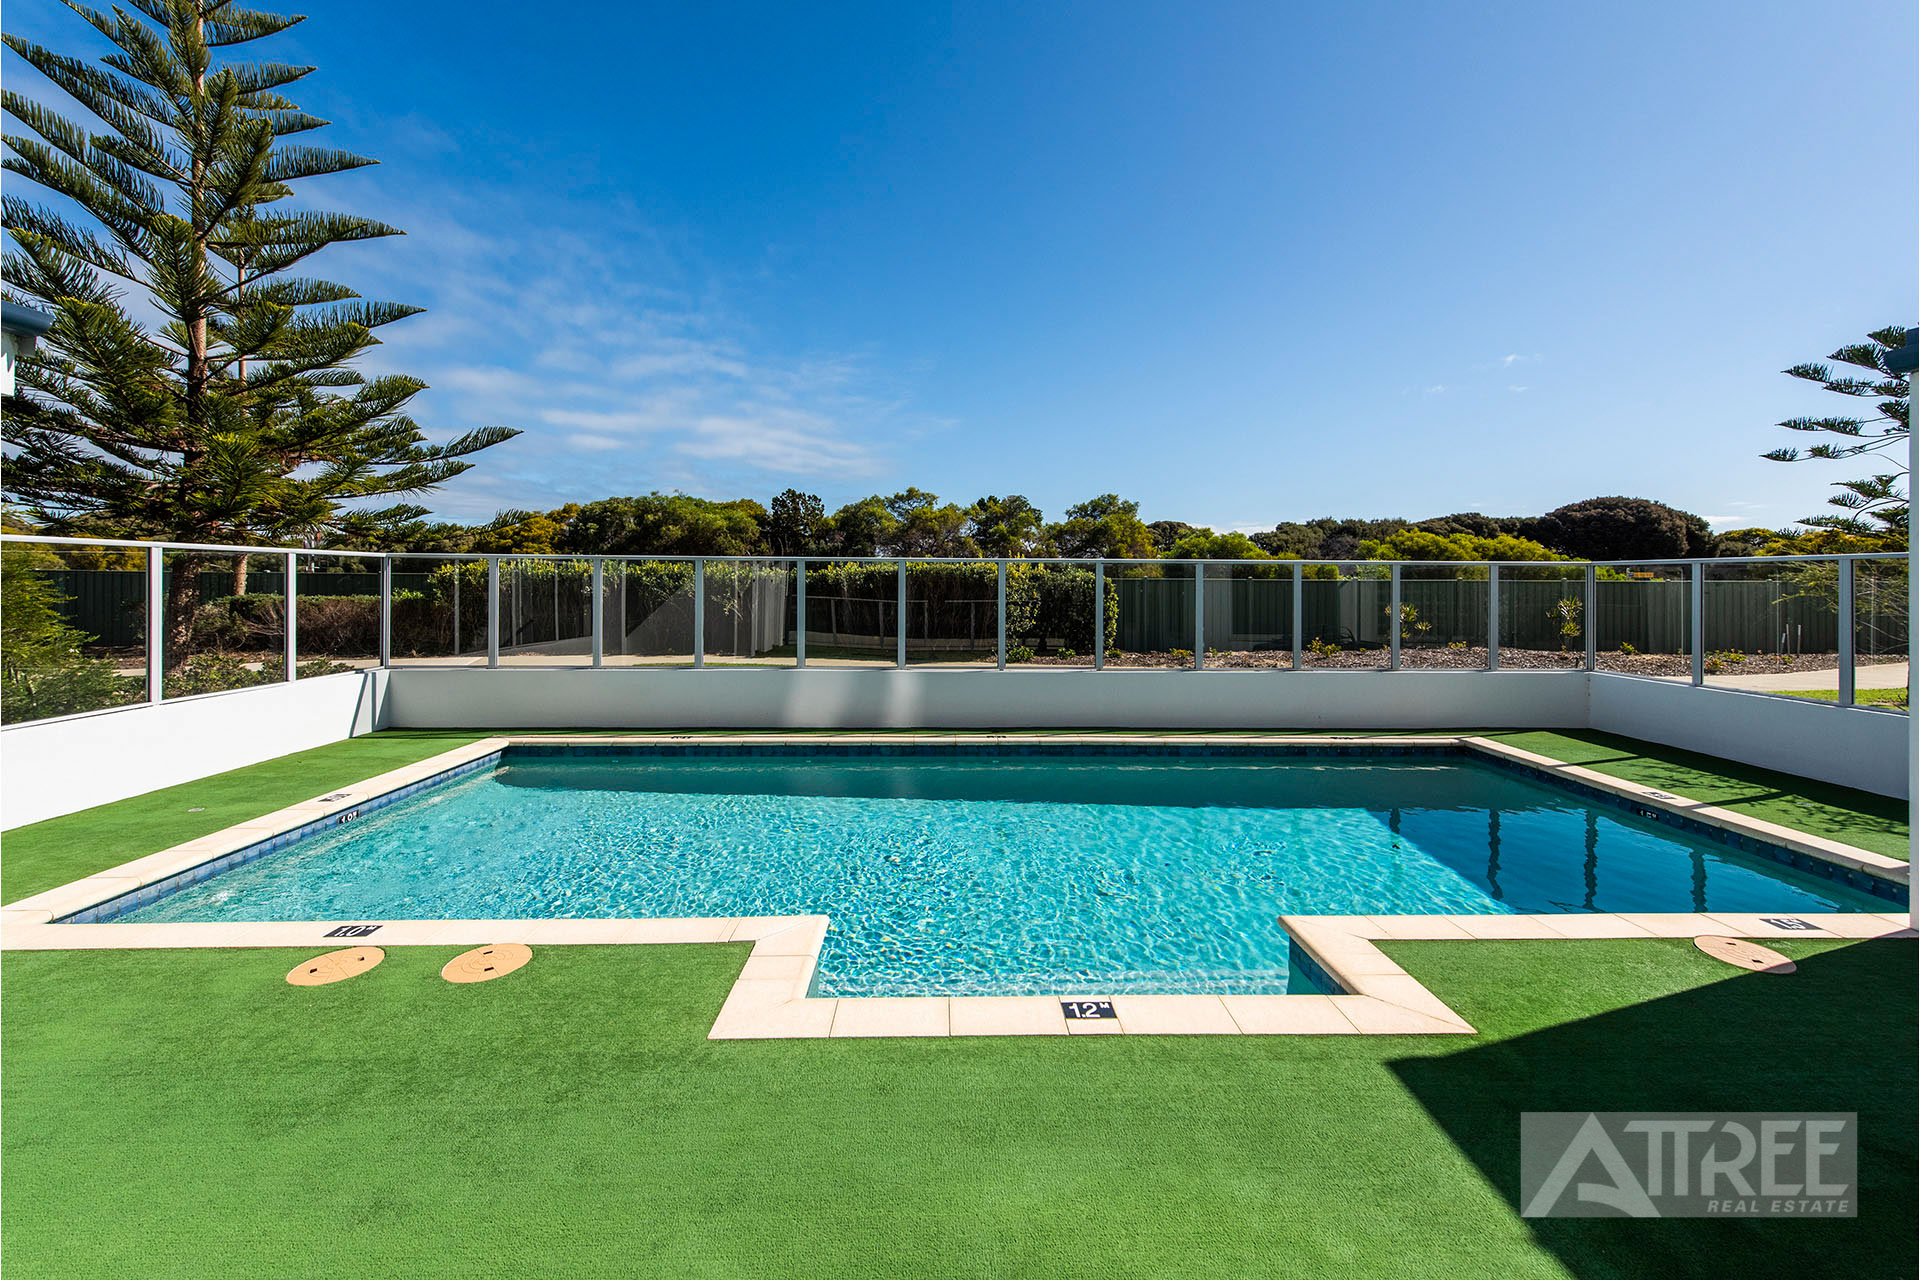 Property for sale in NORTH COOGEE, 3/52 Rollinson Road : Attree Real Estate